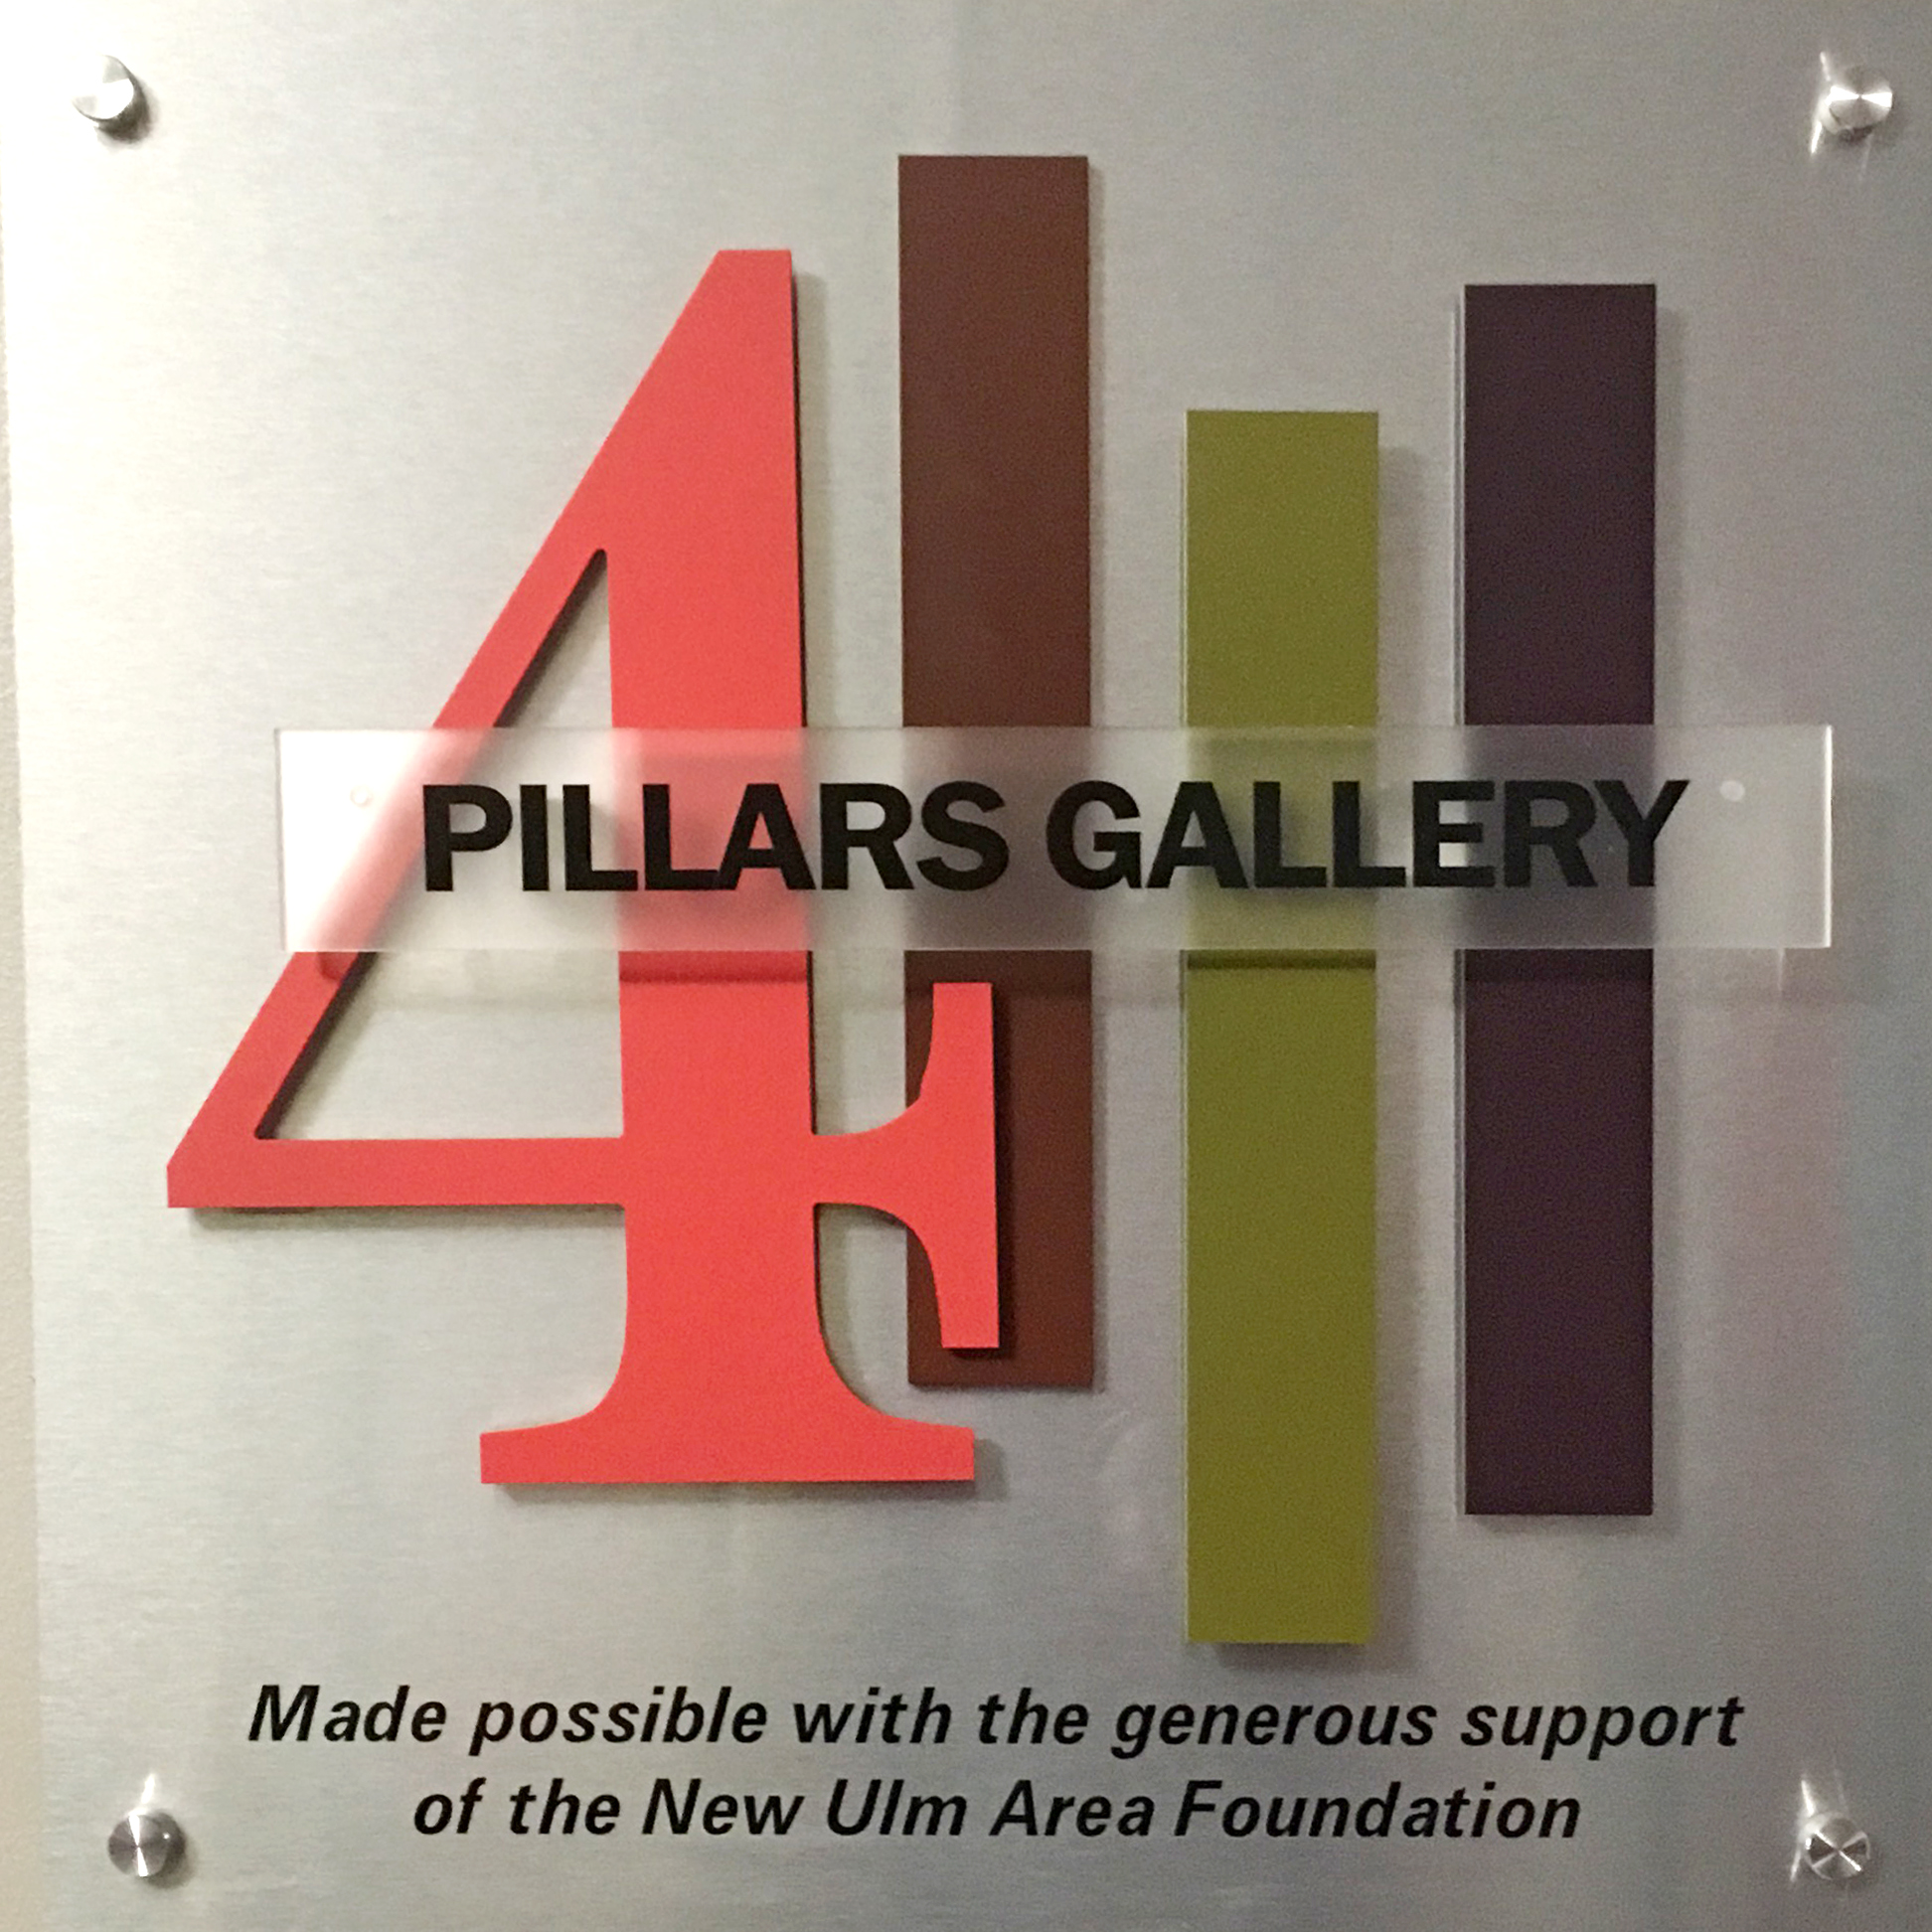 The  4 Pillars Gallery  holds ten to twelve shows per year featuring local and regional artists of all types and all media. Thank you to the New Ulm Area Foundation for providing funding for our state of the art gallery and lighting, which is the only one of its kind in New Ulm.